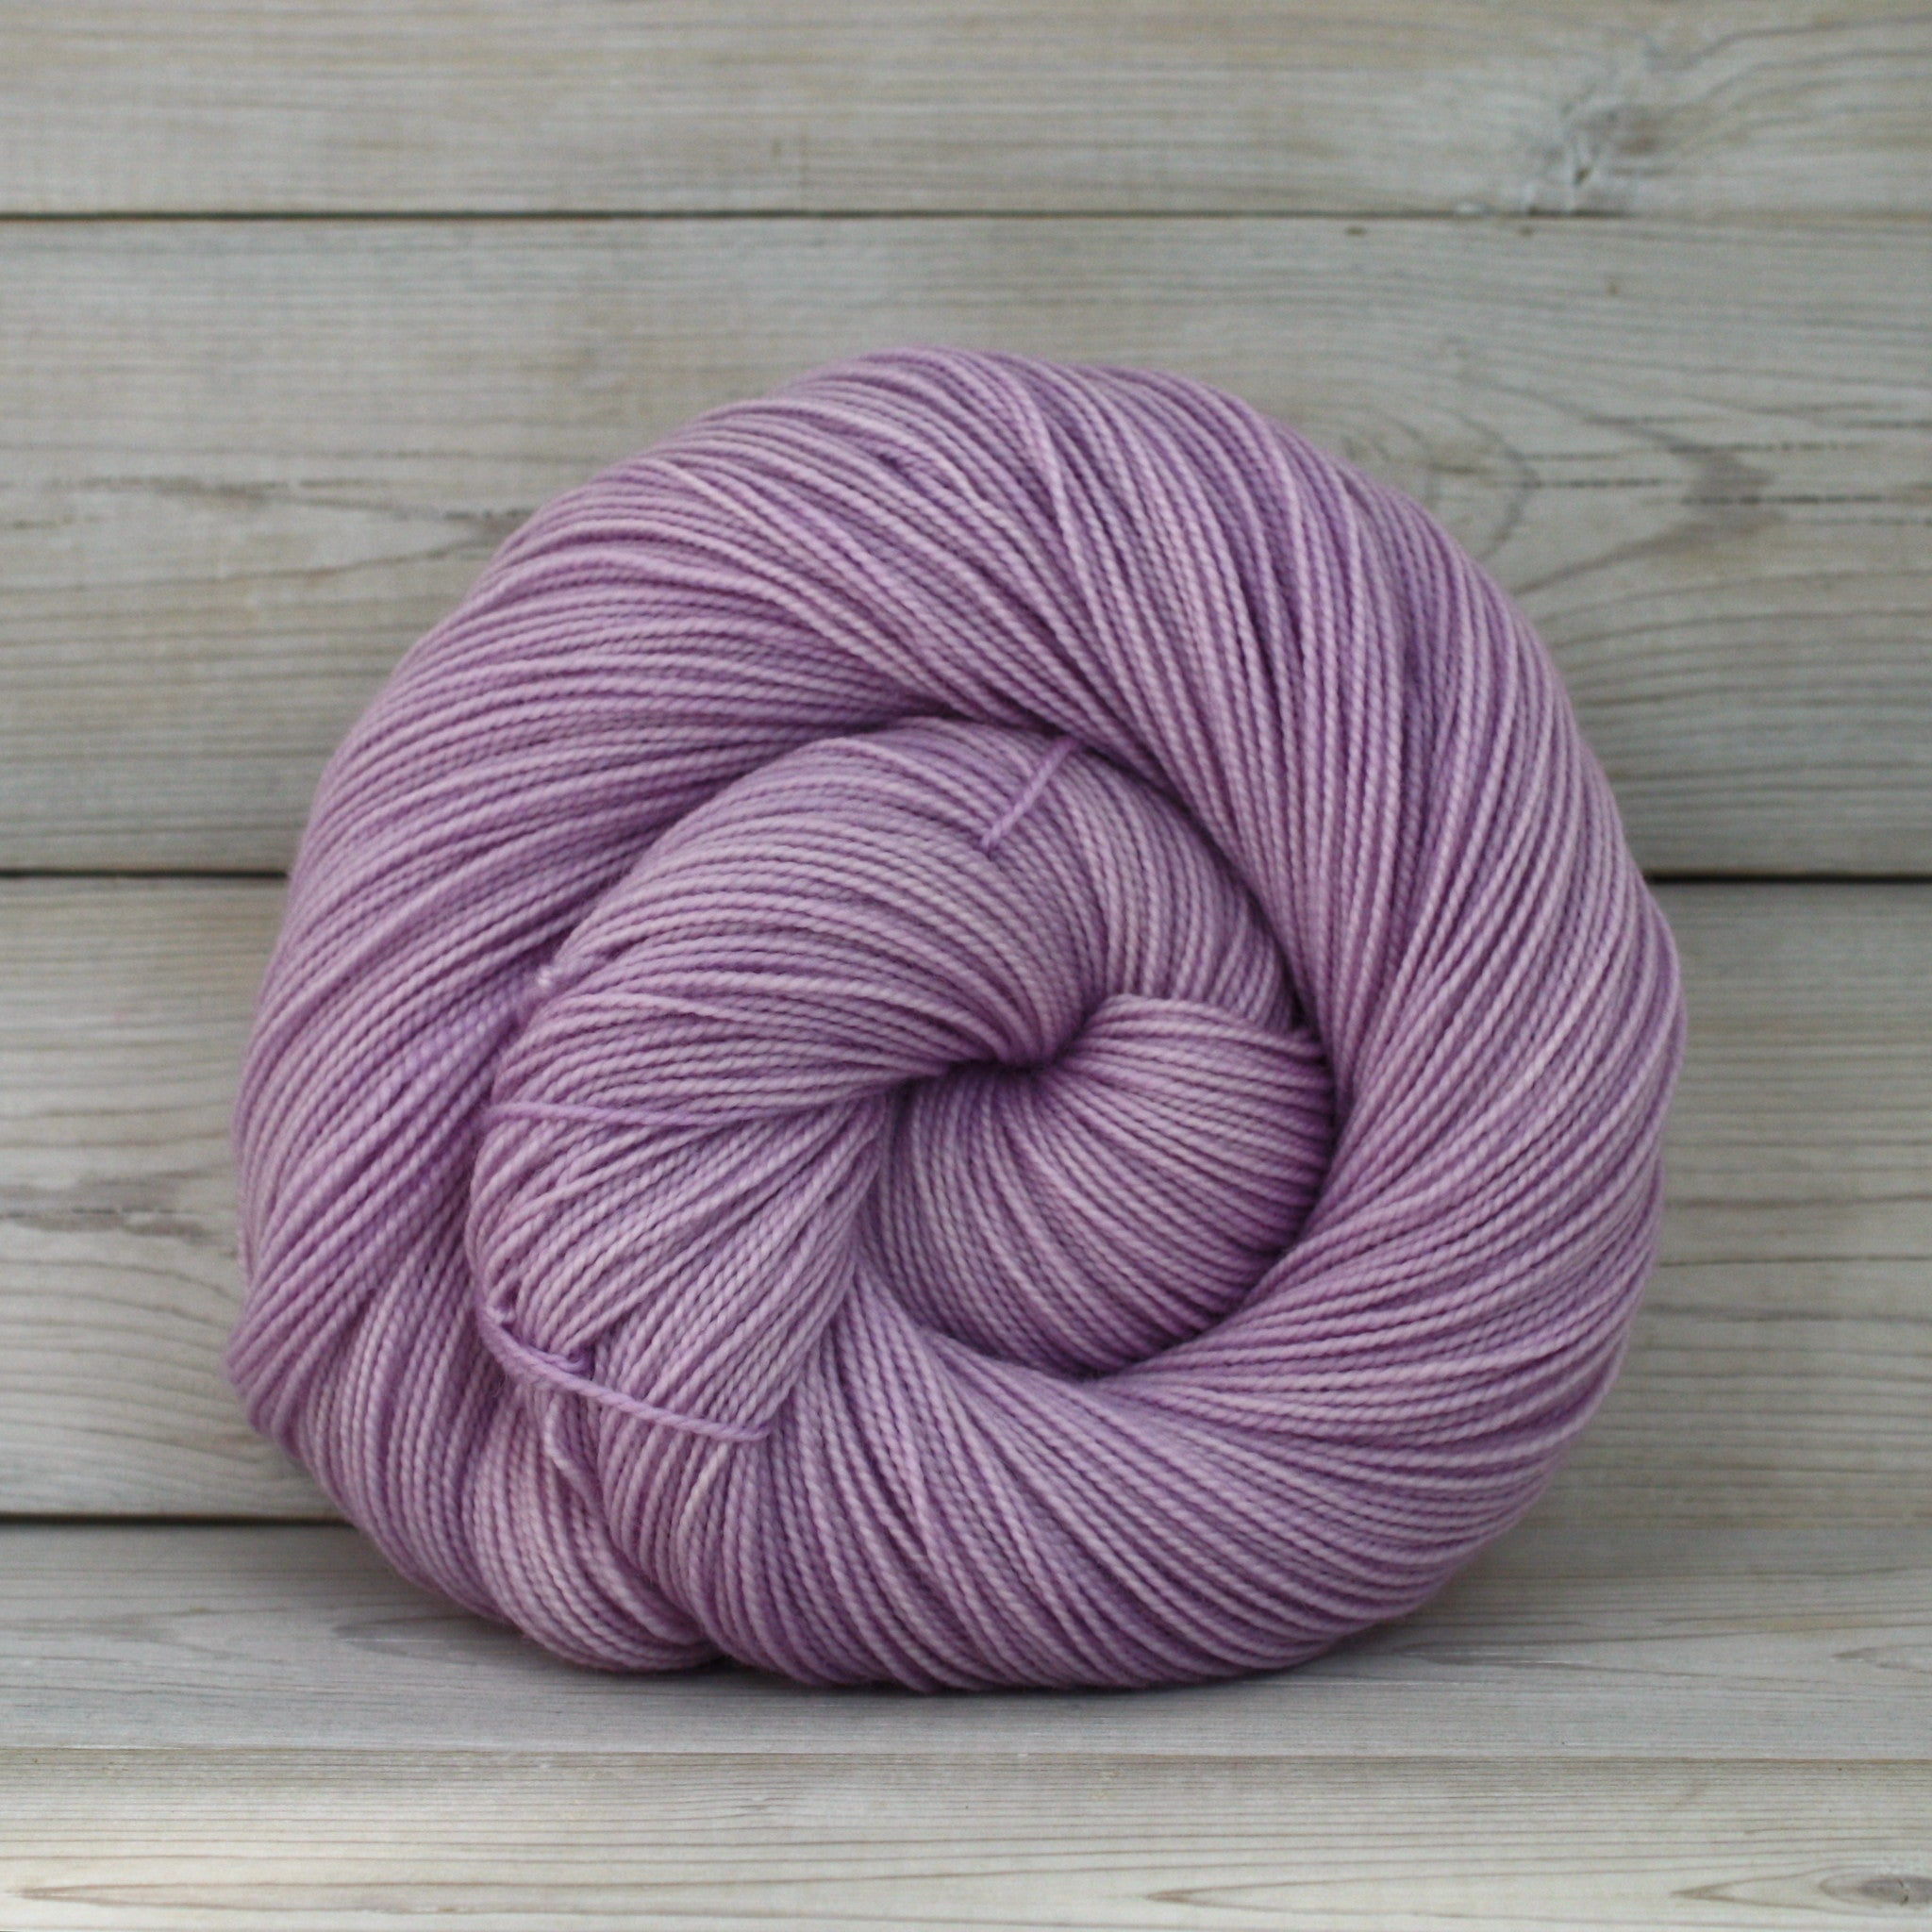 Luna Grey Fiber Arts Celeste Yarn | Colorway: Wisteria